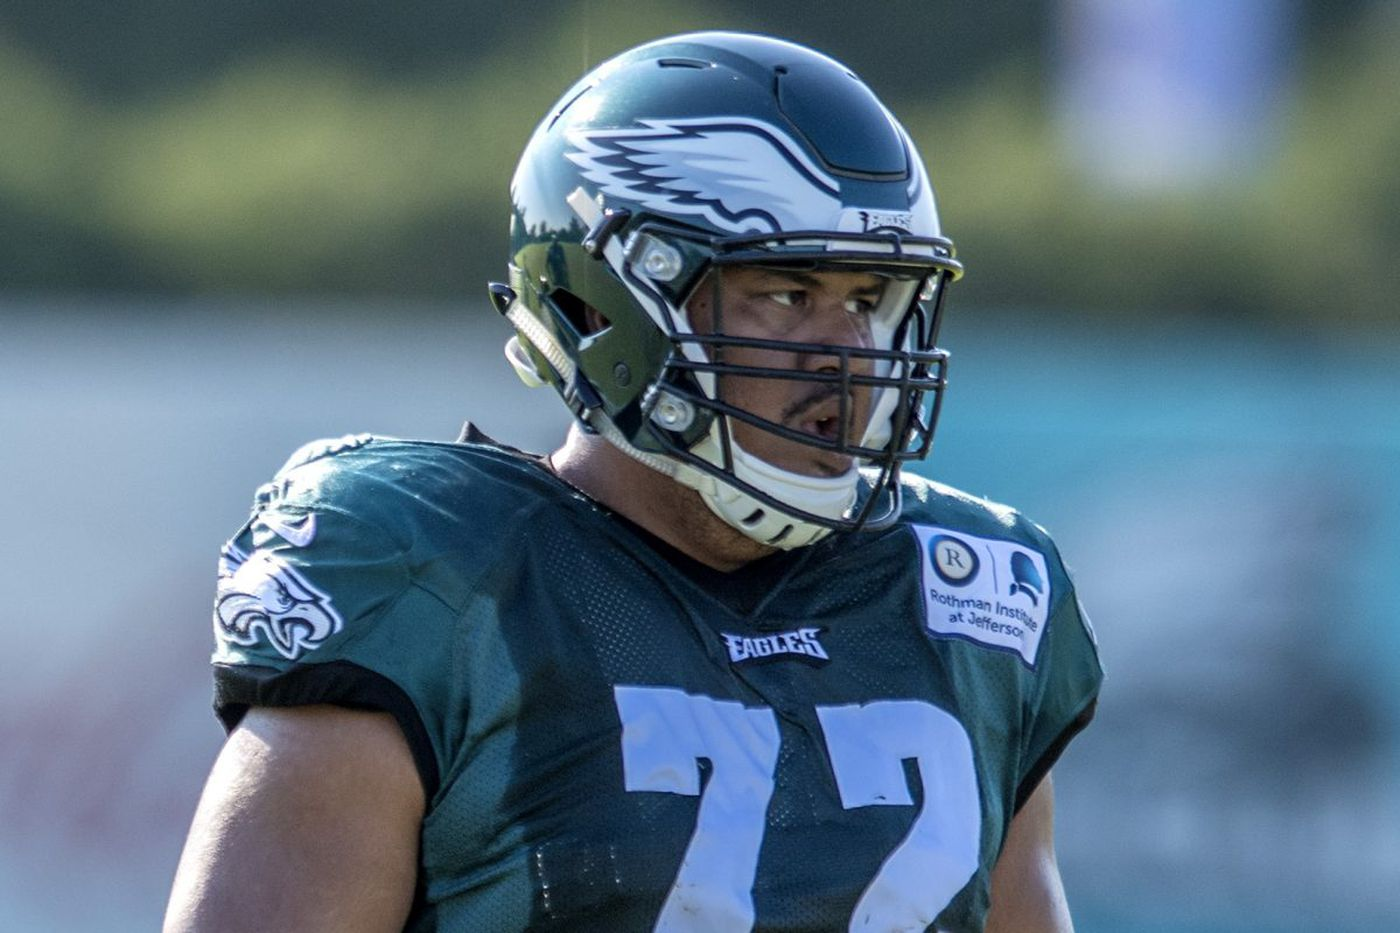 After studying and admiring Jason Peters, Halapoulivaati Vaitai now replaces him on Eagles' offensive line